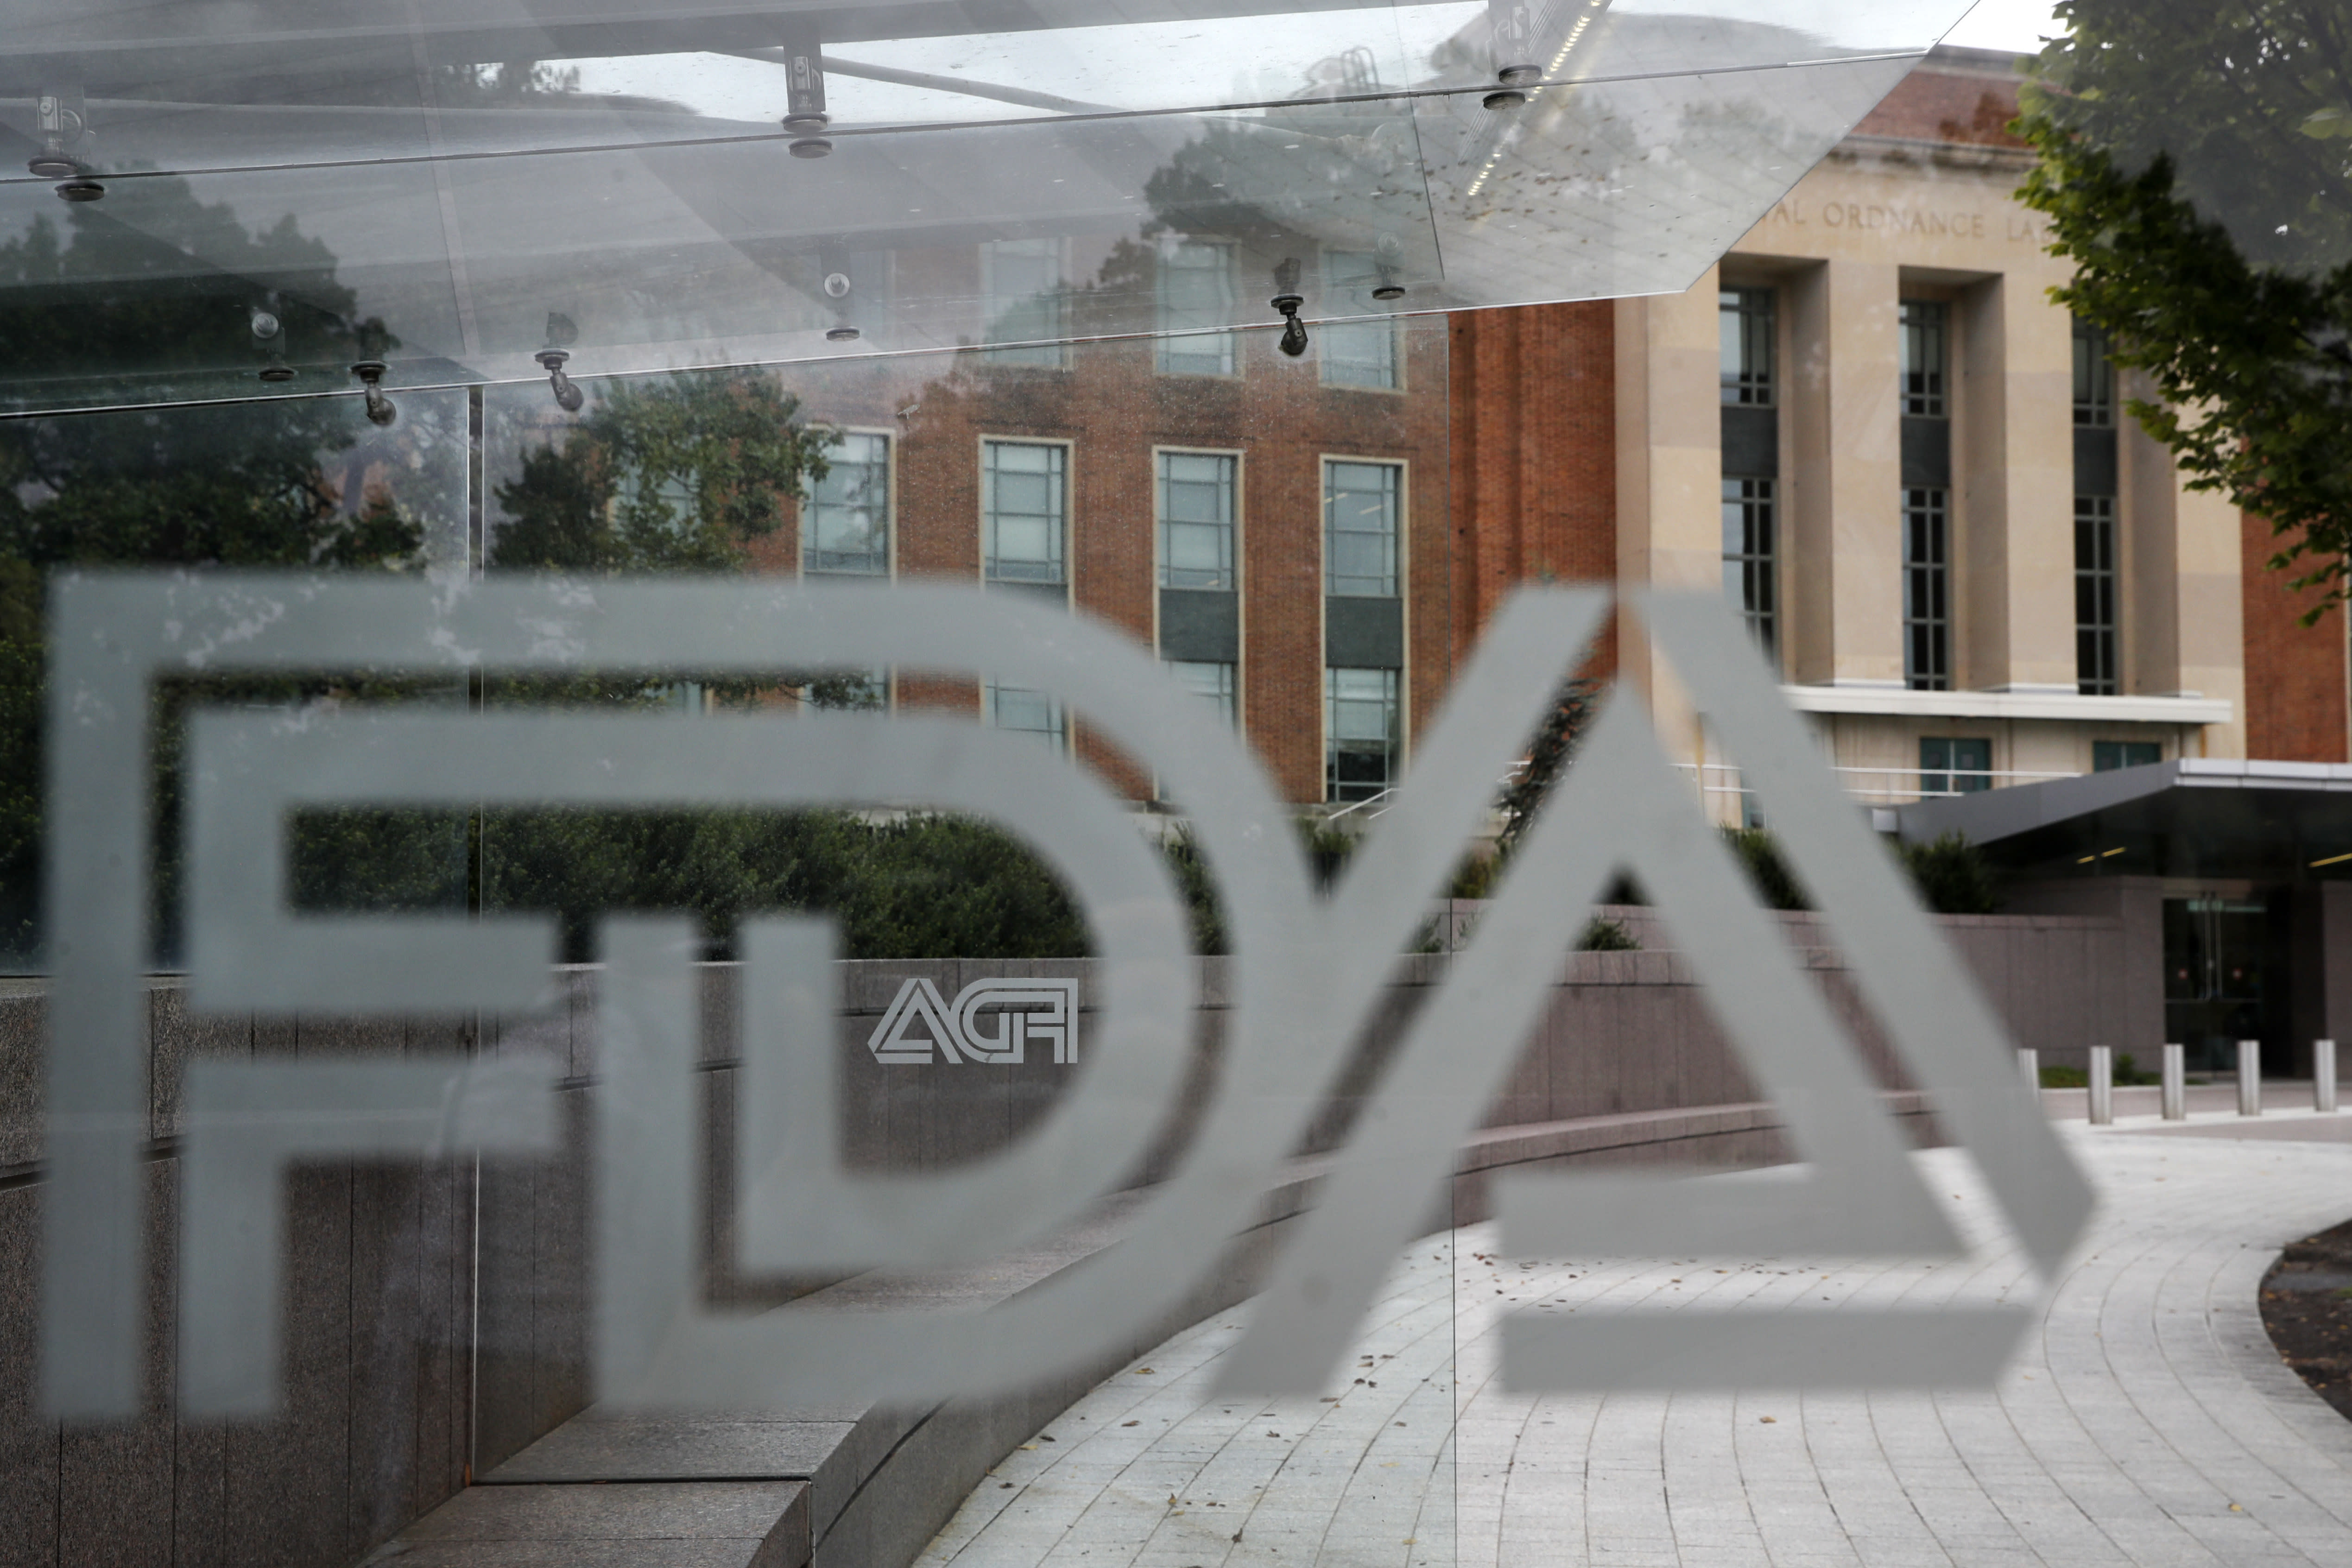 """FILE - This Aug. 2, 2018, file photo shows the U.S. Food and Drug Administration building behind FDA logos at a bus stop on the agency's campus in Silver Spring, Md. In a report to Congress and an accompanying """"playbook"""" for states and localities, key federal health agencies and the Defense Department sketched out complex plans for a vaccination campaign to begin gradually early next year or later in 2020, eventually ramping up to reach any American who wants a shot. The Pentagon is involved with the distribution of vaccines, but civilian health workers will be the ones giving shots. (AP Photo/Jacquelyn Martin, File)"""